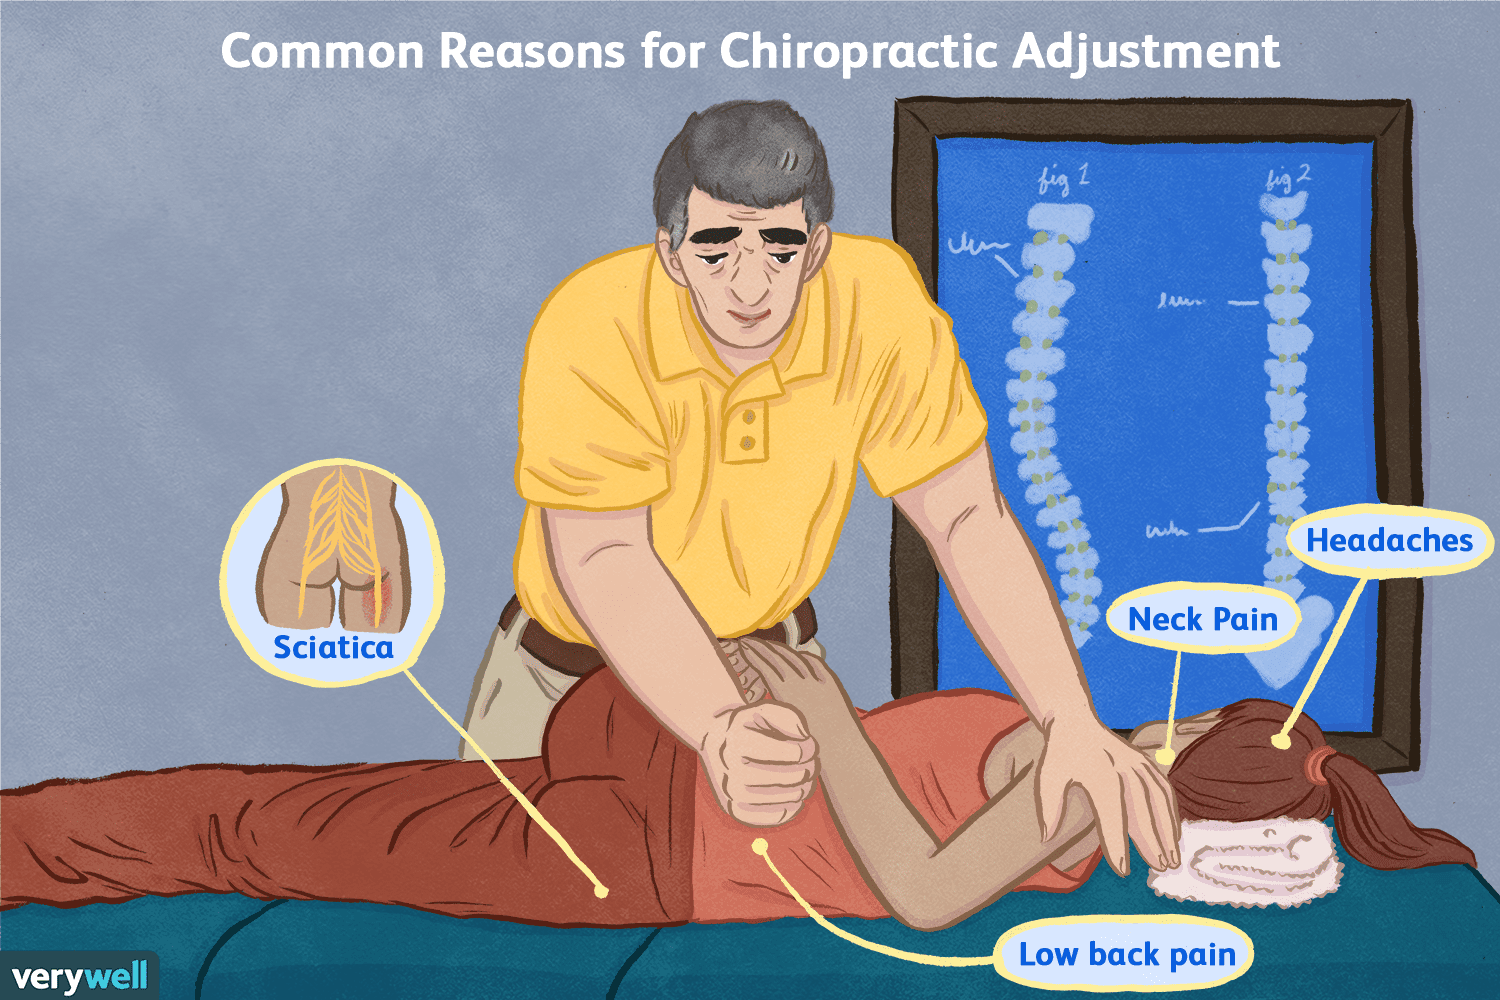 Common Reasons for Chiropractic Adjustment